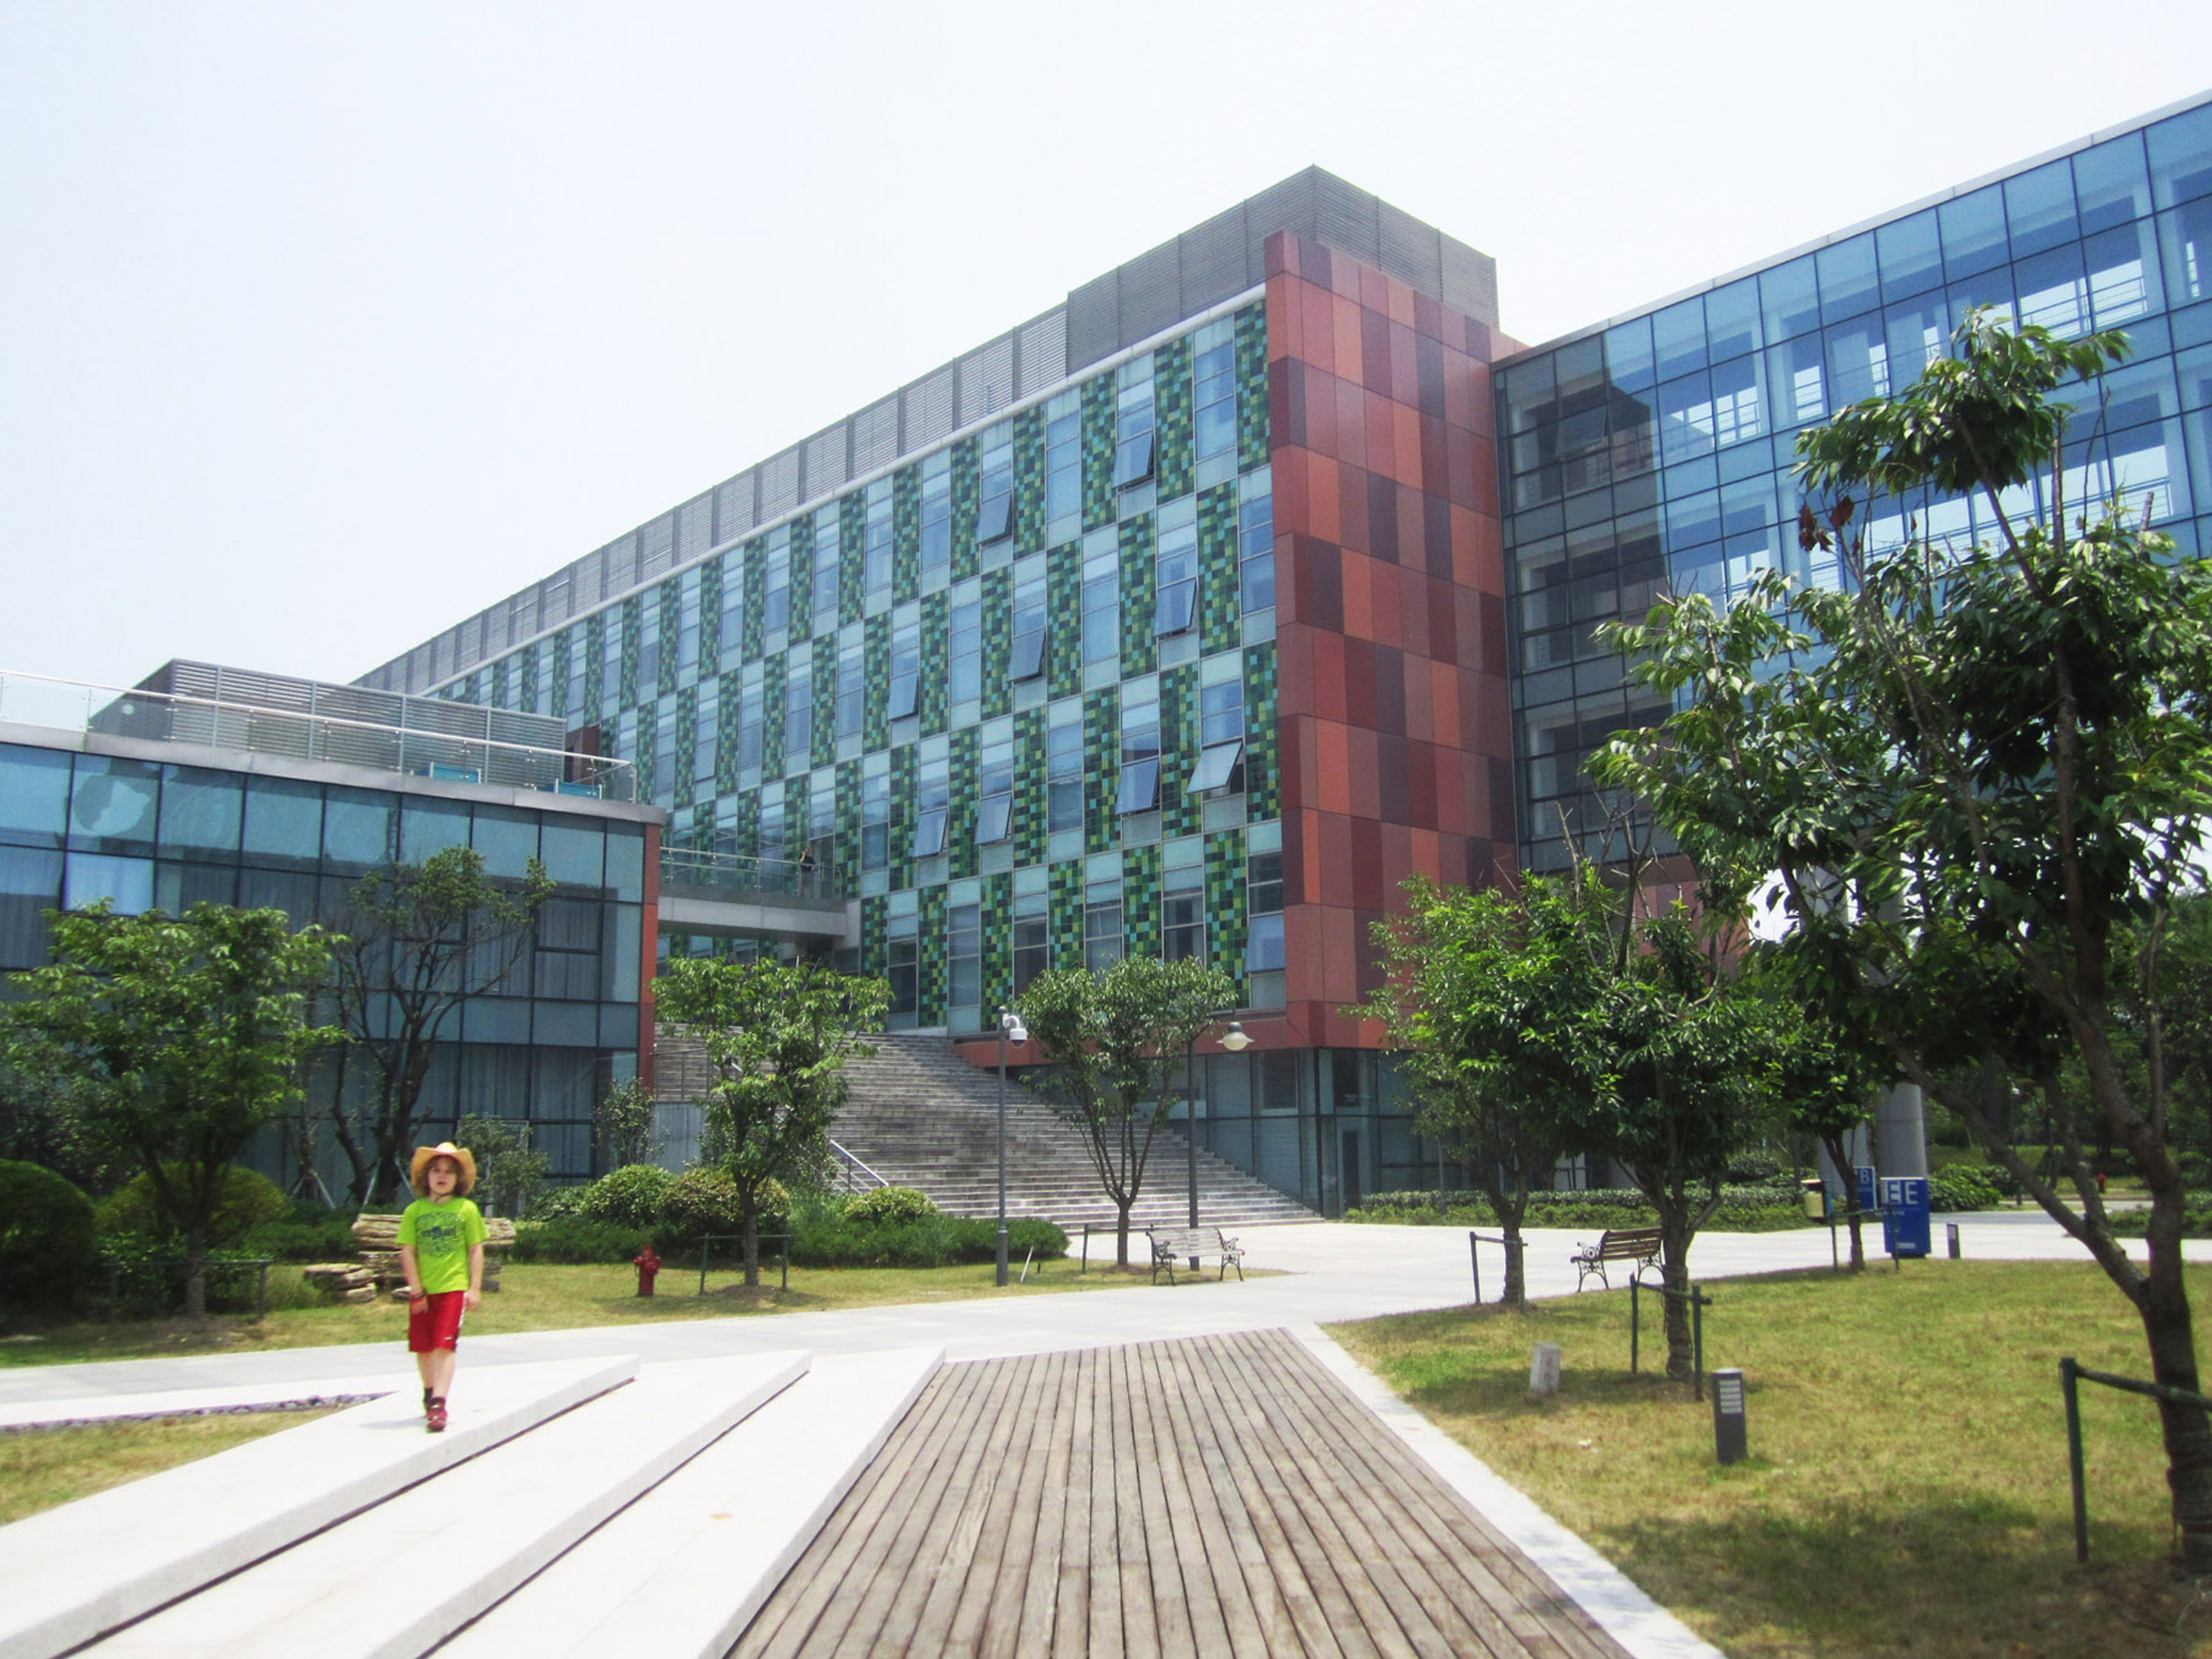 Photo by Bill Sewell. <p> The campus of XJTLU in Suzhou, including seven-year-old Ben.